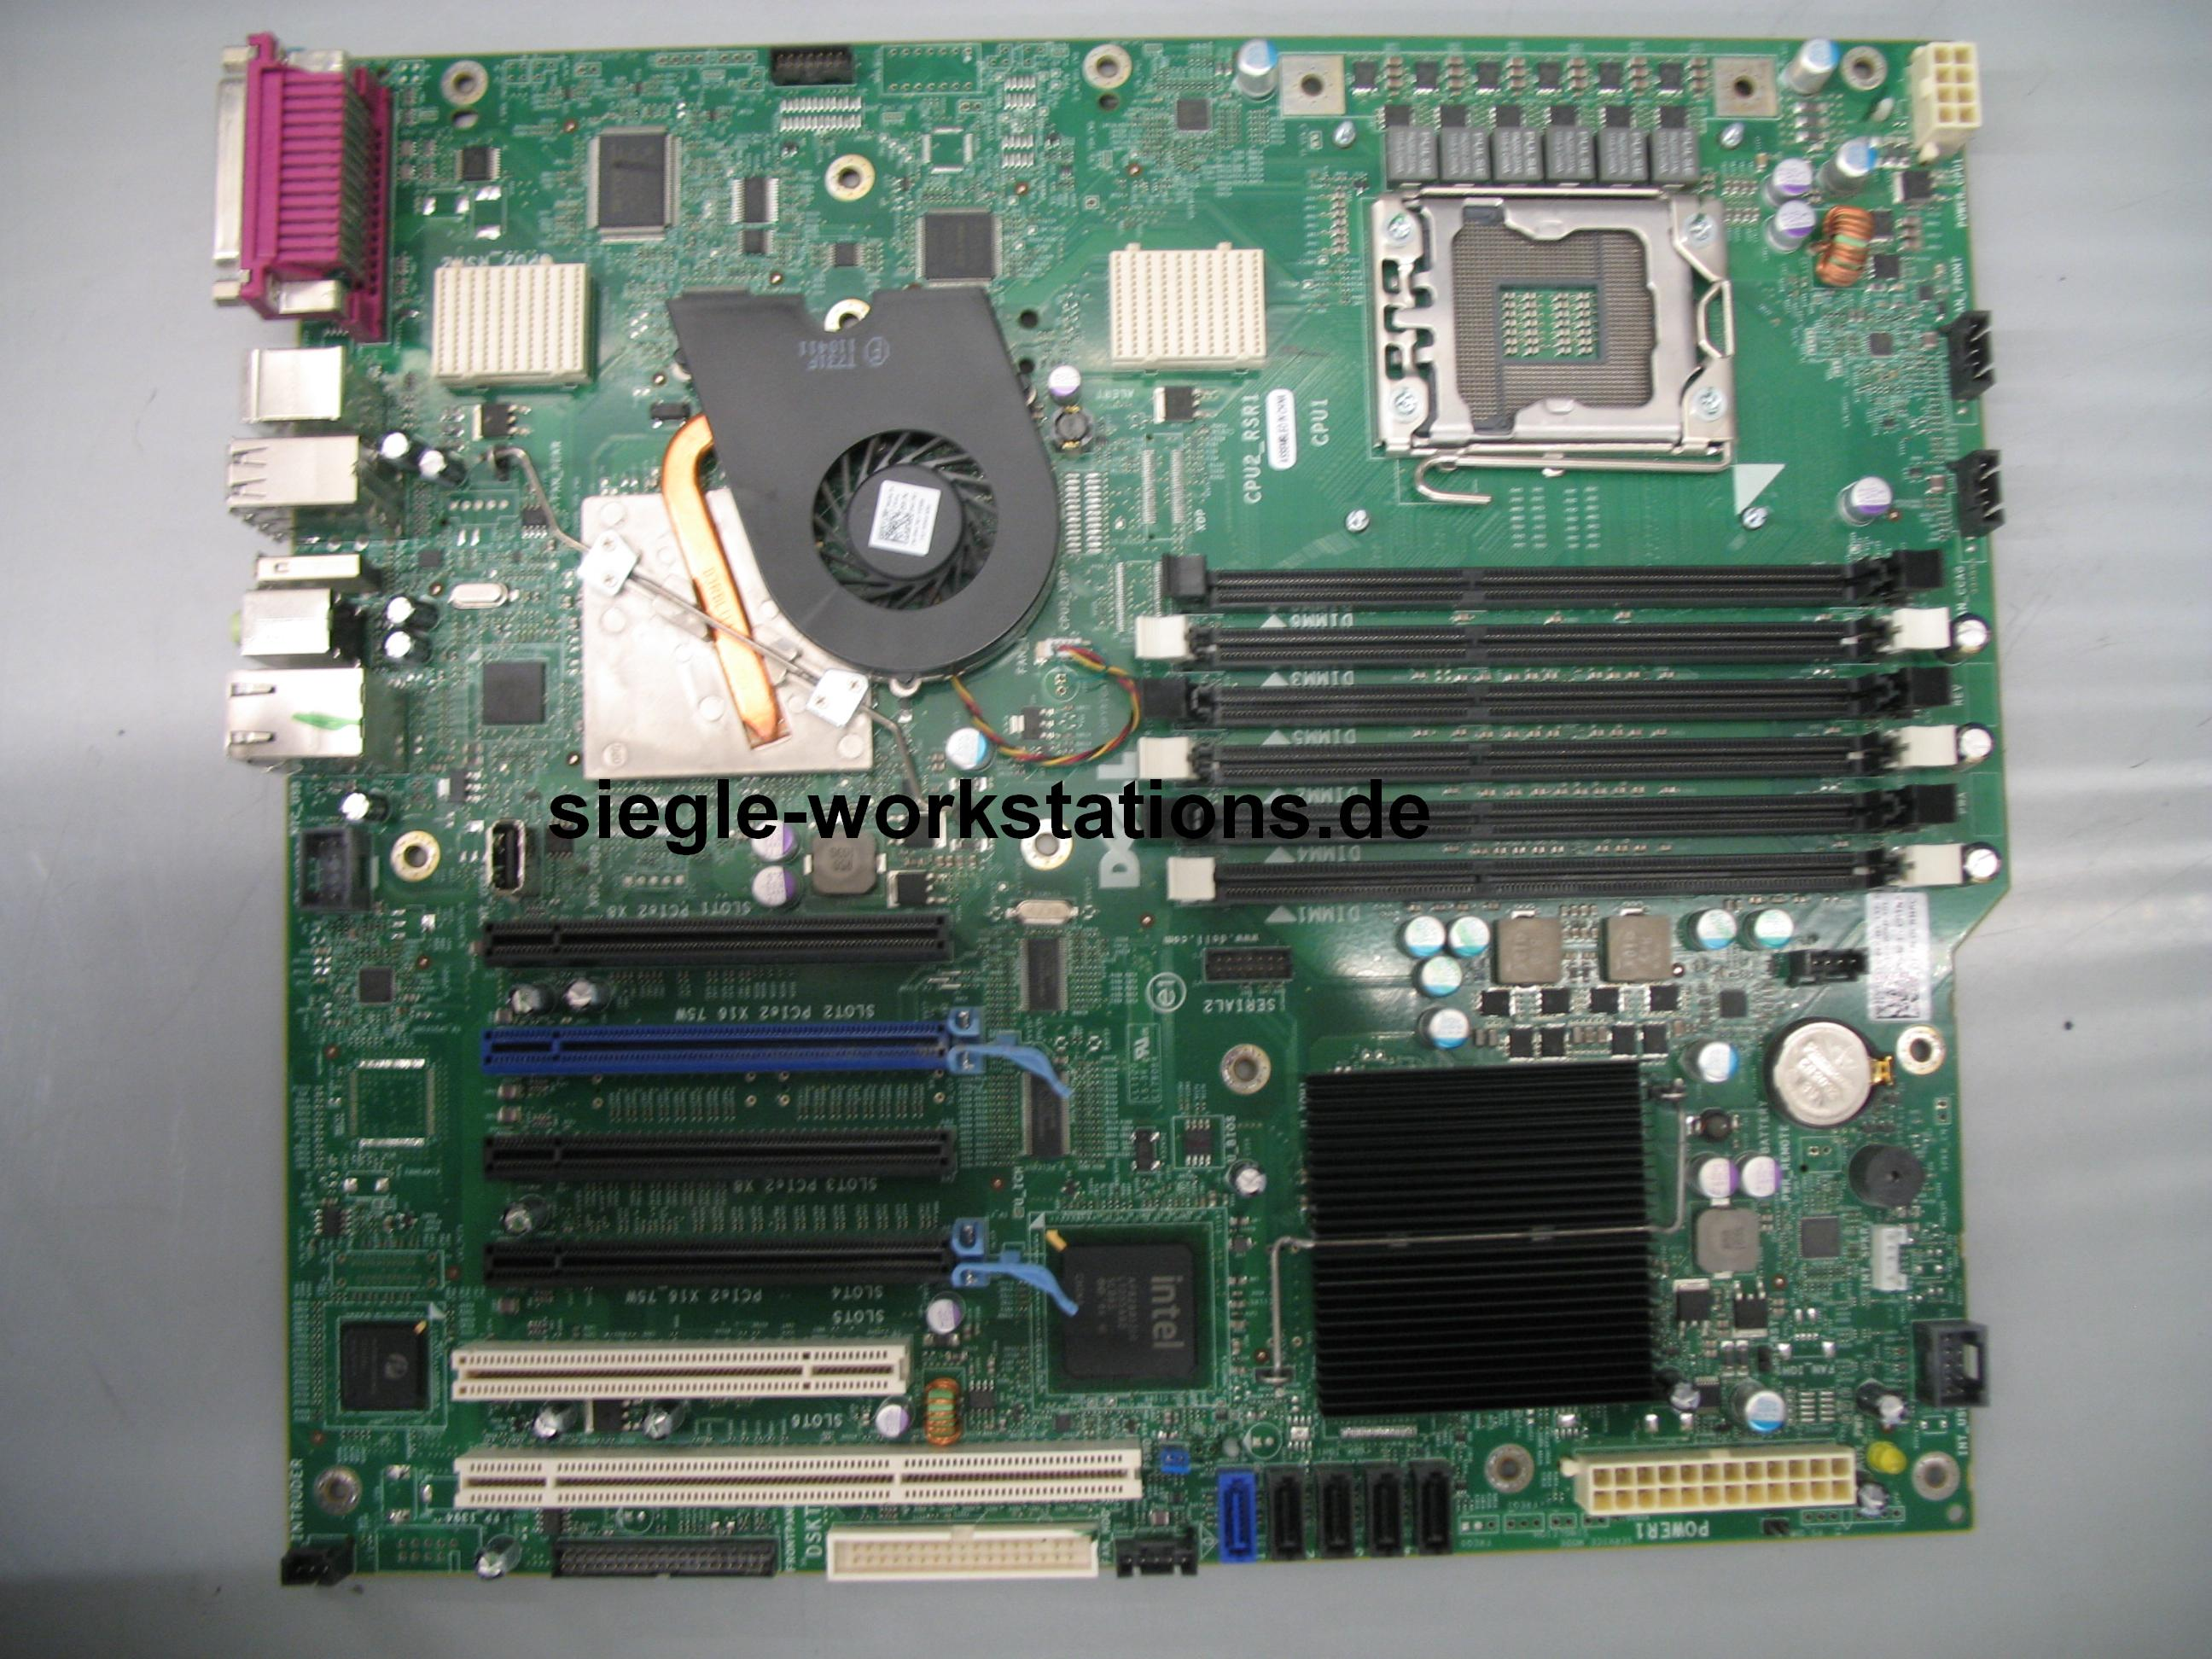 siegle server cad workstations mainboard dell p n 0crh6c f r precision t5500 workstation. Black Bedroom Furniture Sets. Home Design Ideas